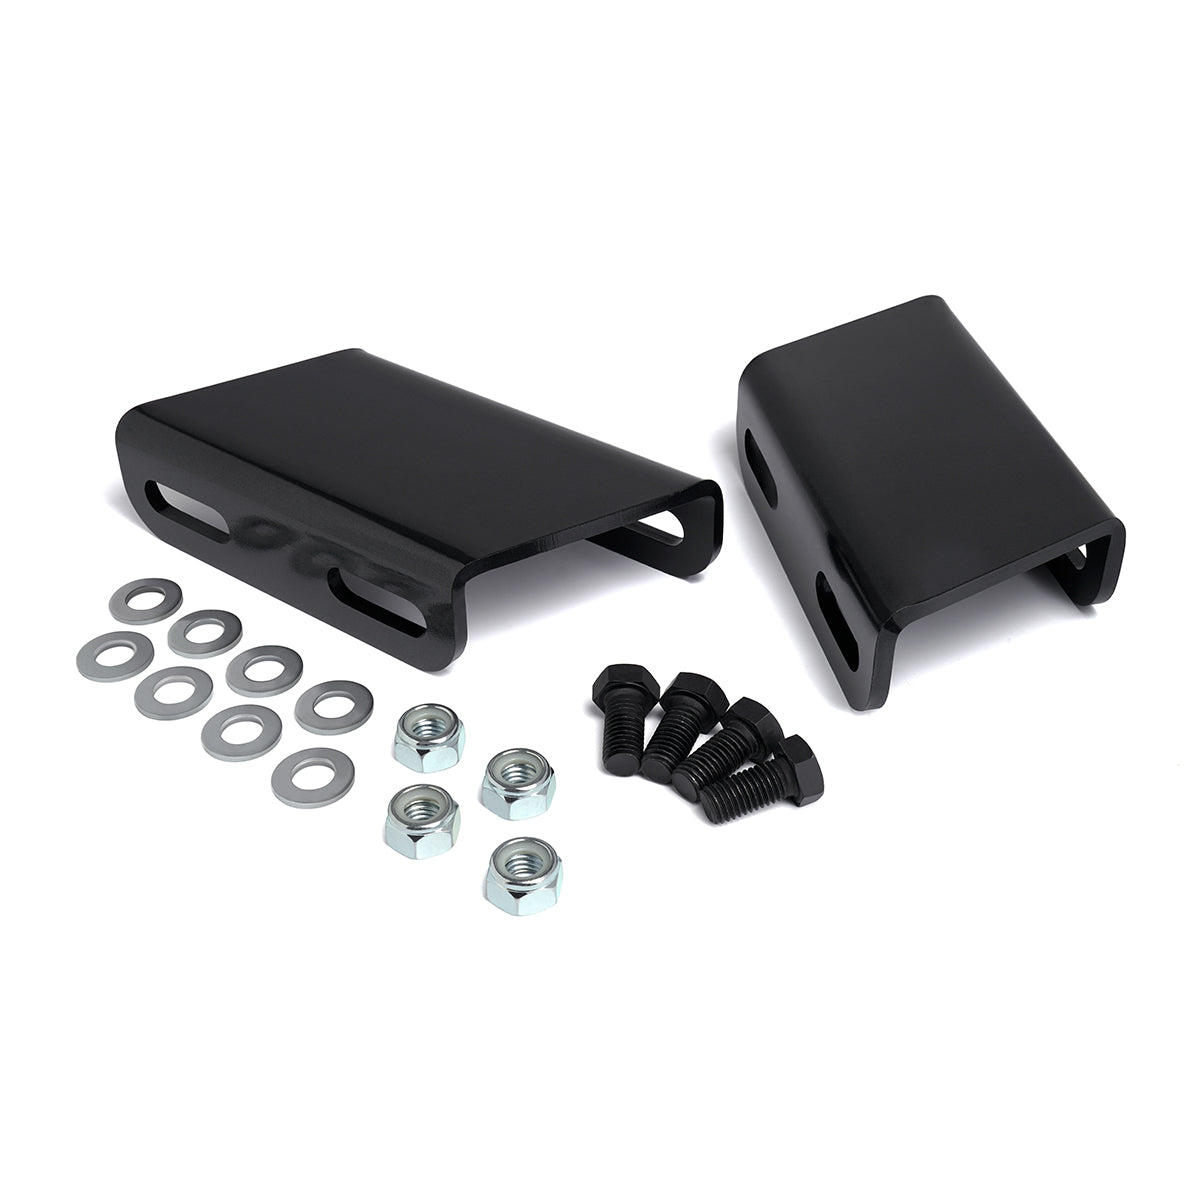 1994-2002 Dodge Ram 2500 Full Lift Kit with Sway Bar Drop